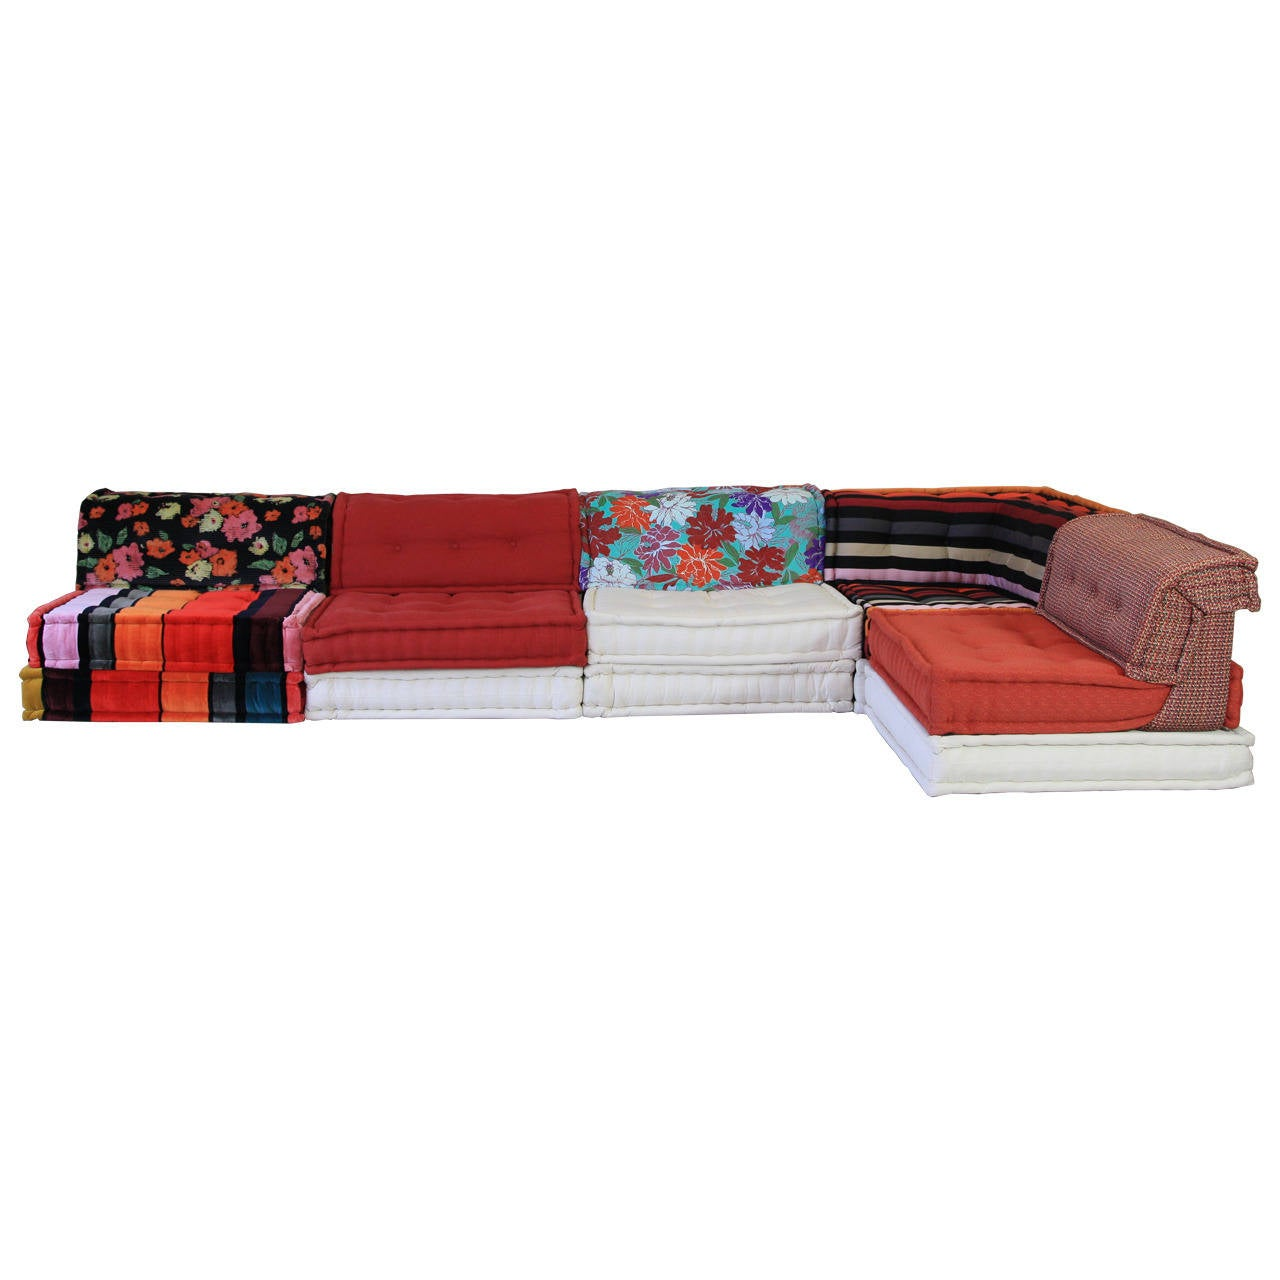 roche bobois mah jong sofa at 1stdibs. Black Bedroom Furniture Sets. Home Design Ideas